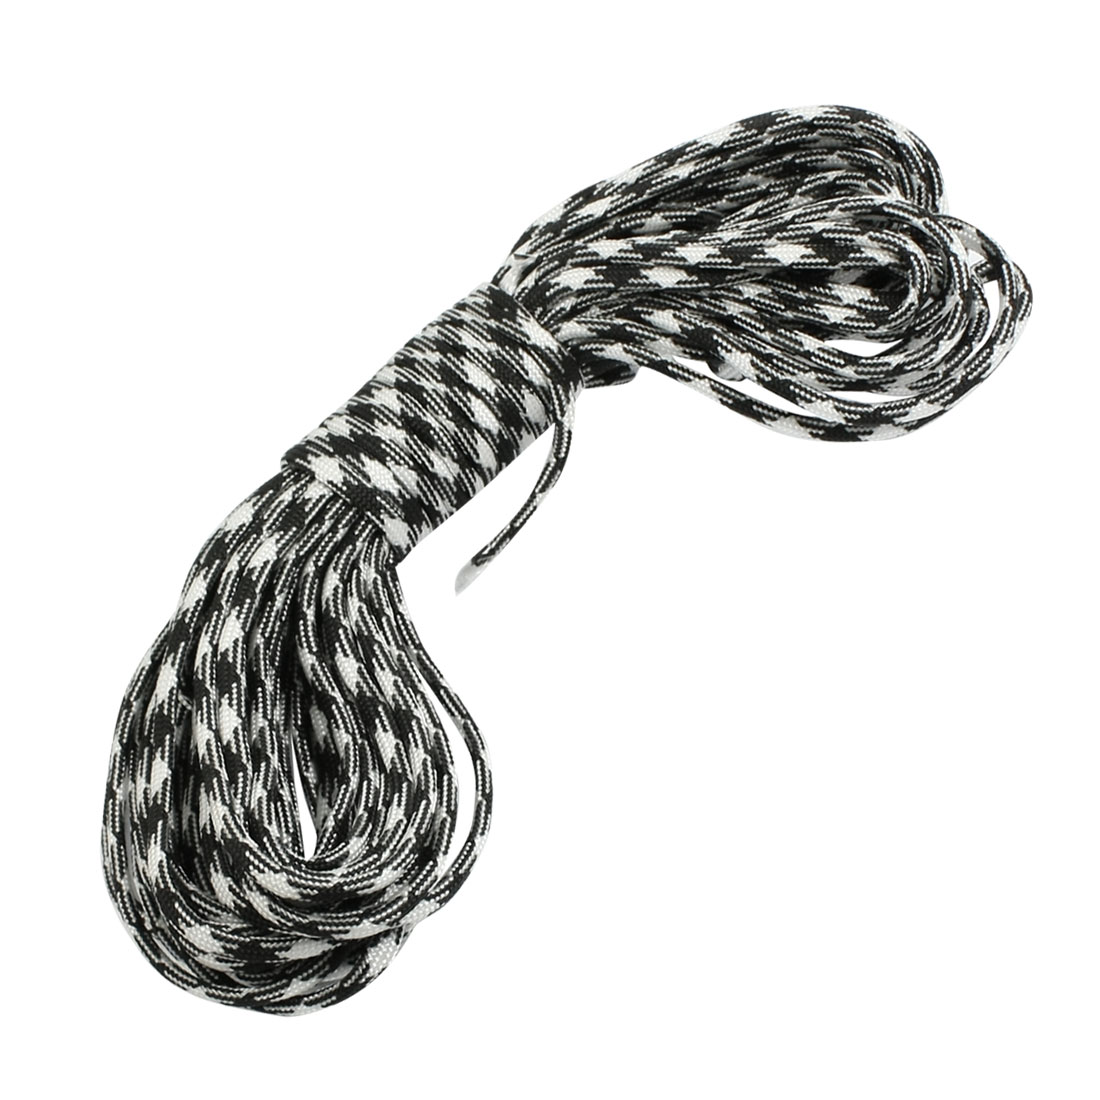 Emergency Rhombus Pattern Nylon Braided Cord Black White 10 Meter